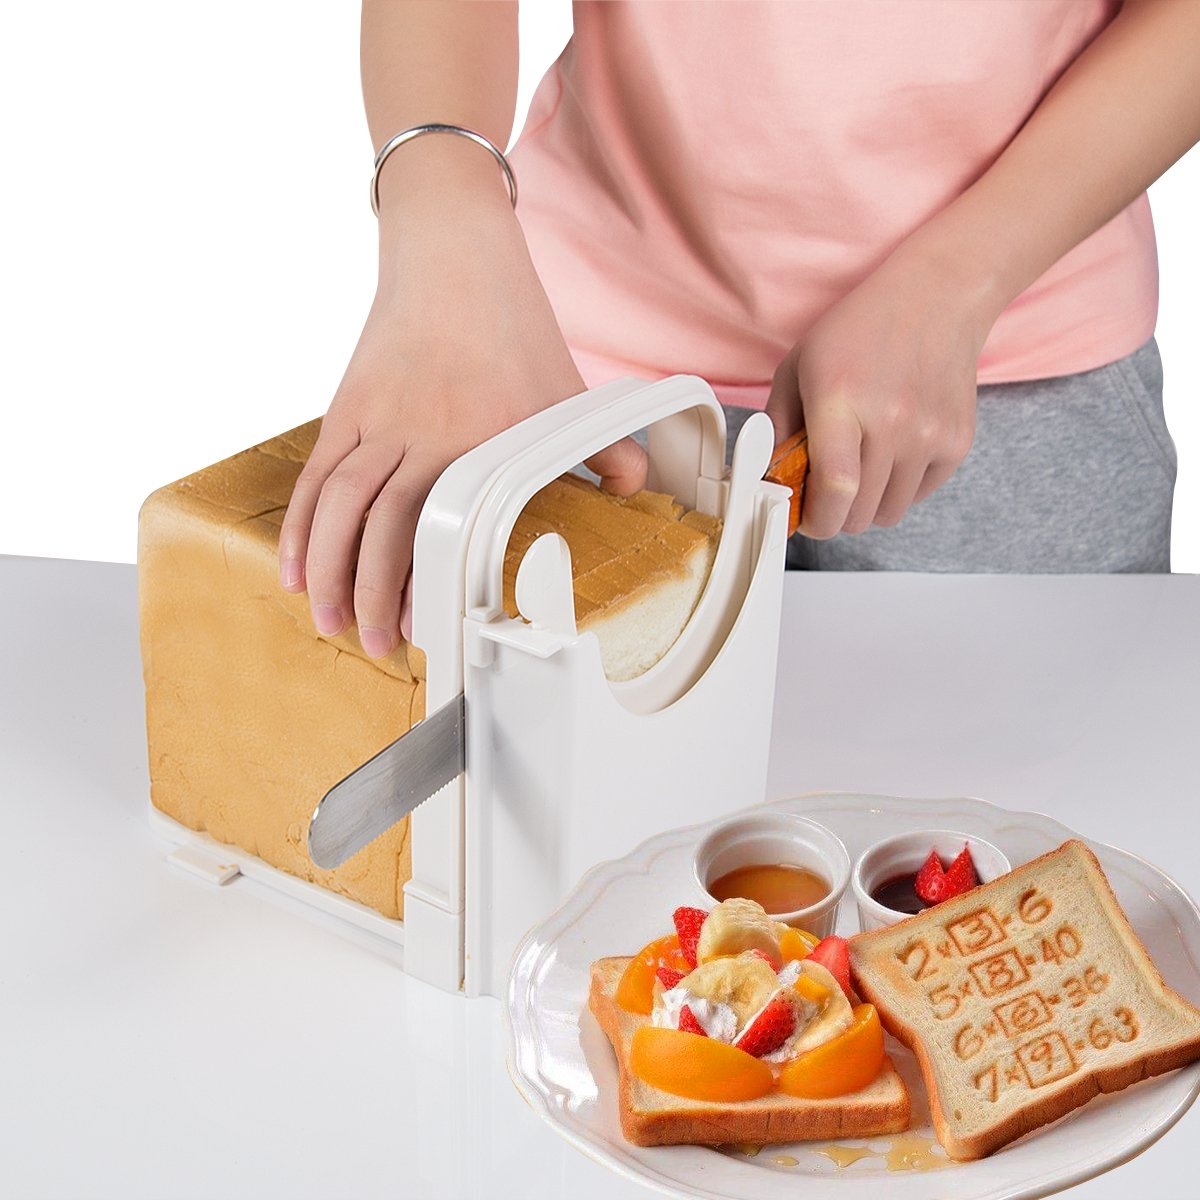 Bread Slicer Customization Toast Slicer Loaf Slicer Cutter for Homemade Bread ABS Environmentally Friendly Plastic Foldable, Bread Cutting Guide and Adjustable with 4 Slice Thicknesses,White by SUMK (Image #6)